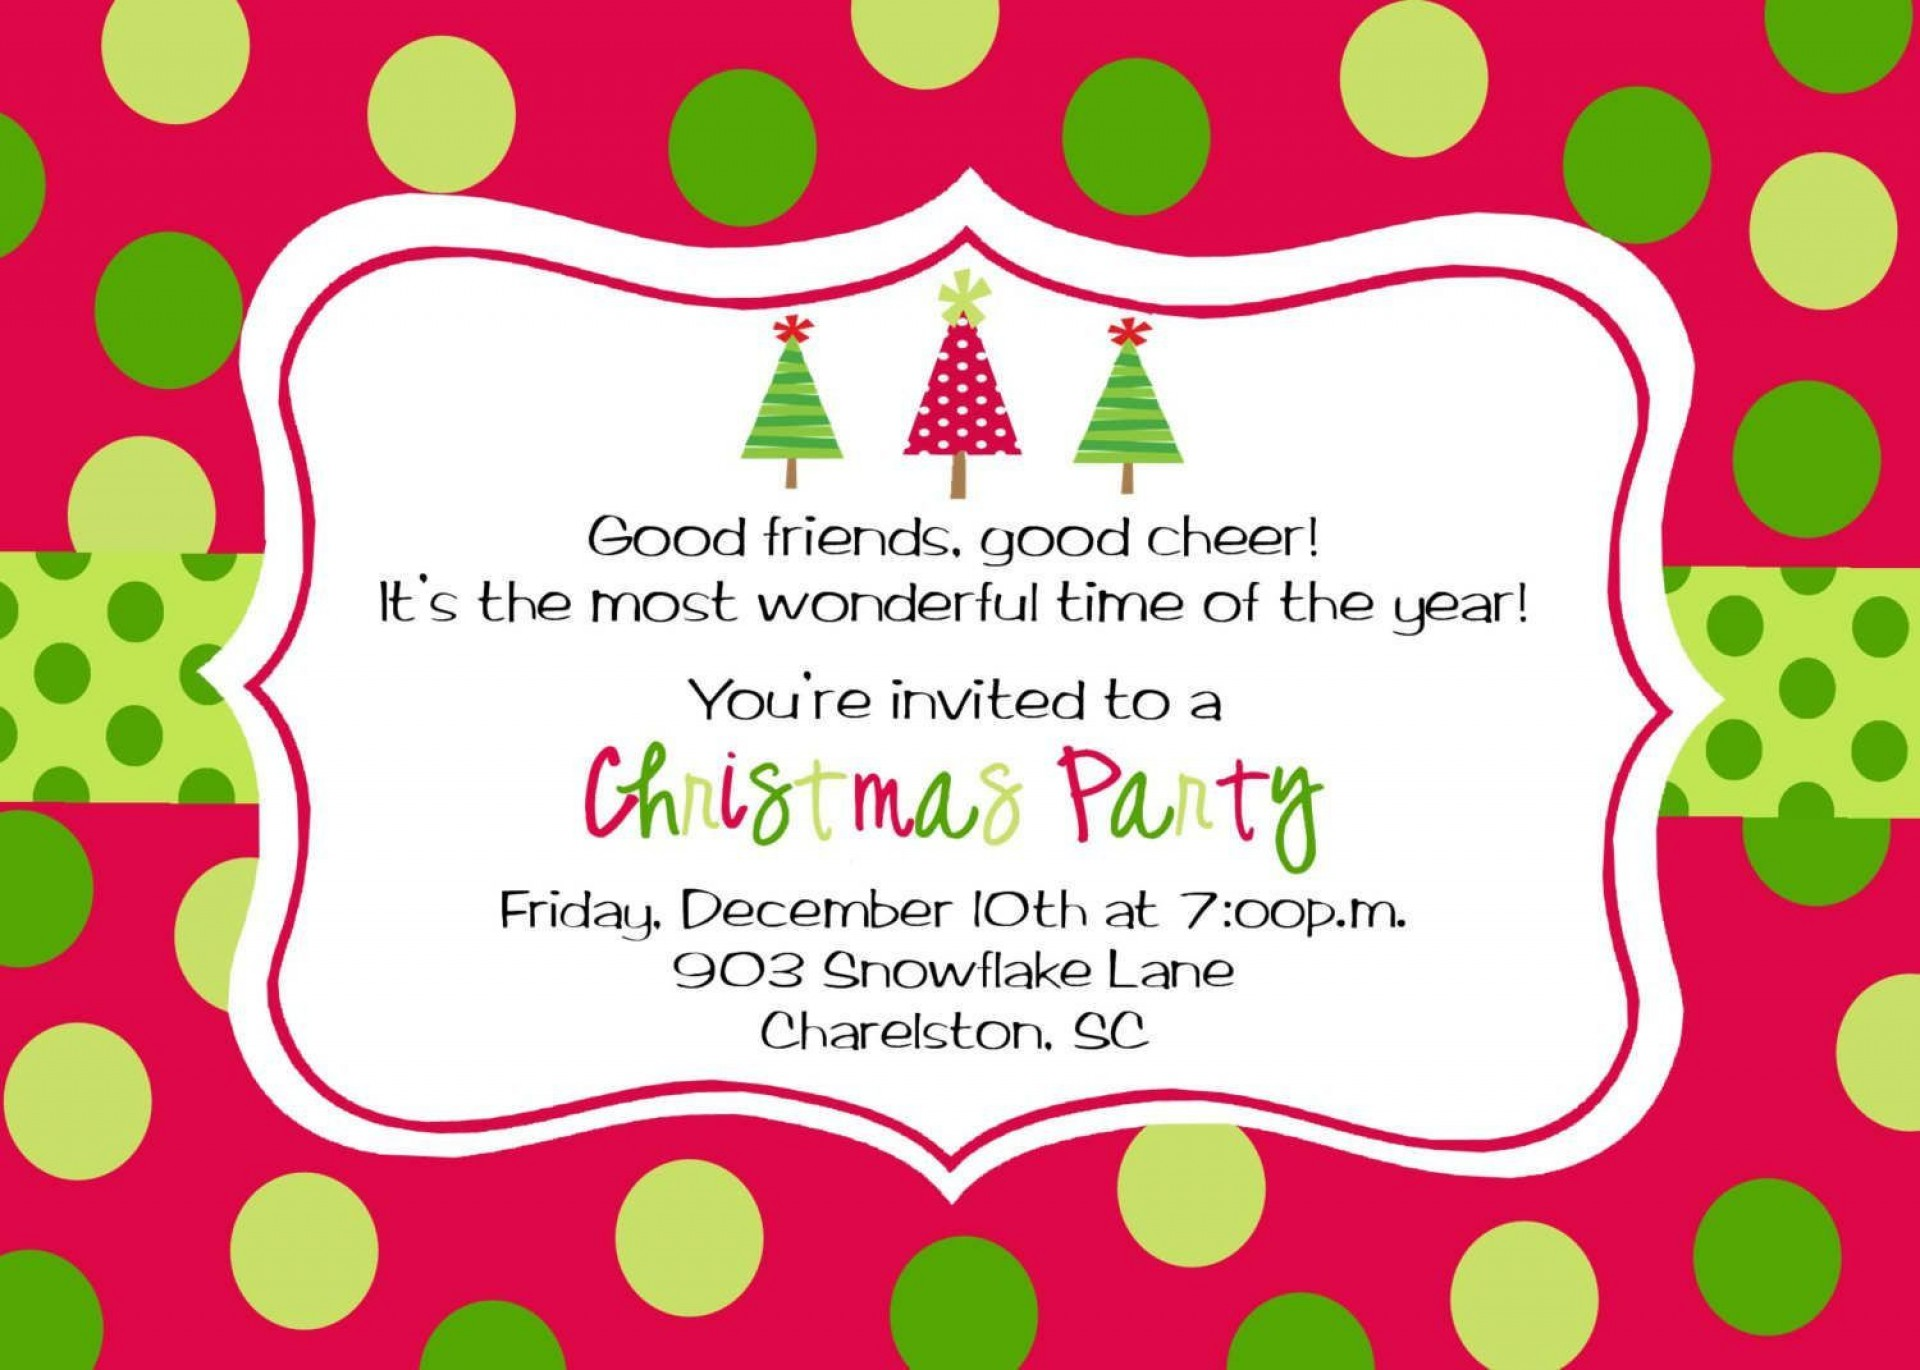 008 Impressive Holiday Party Invite Template Word Photo  Cocktail Invitation Wording Sample Microsoft Christma1920